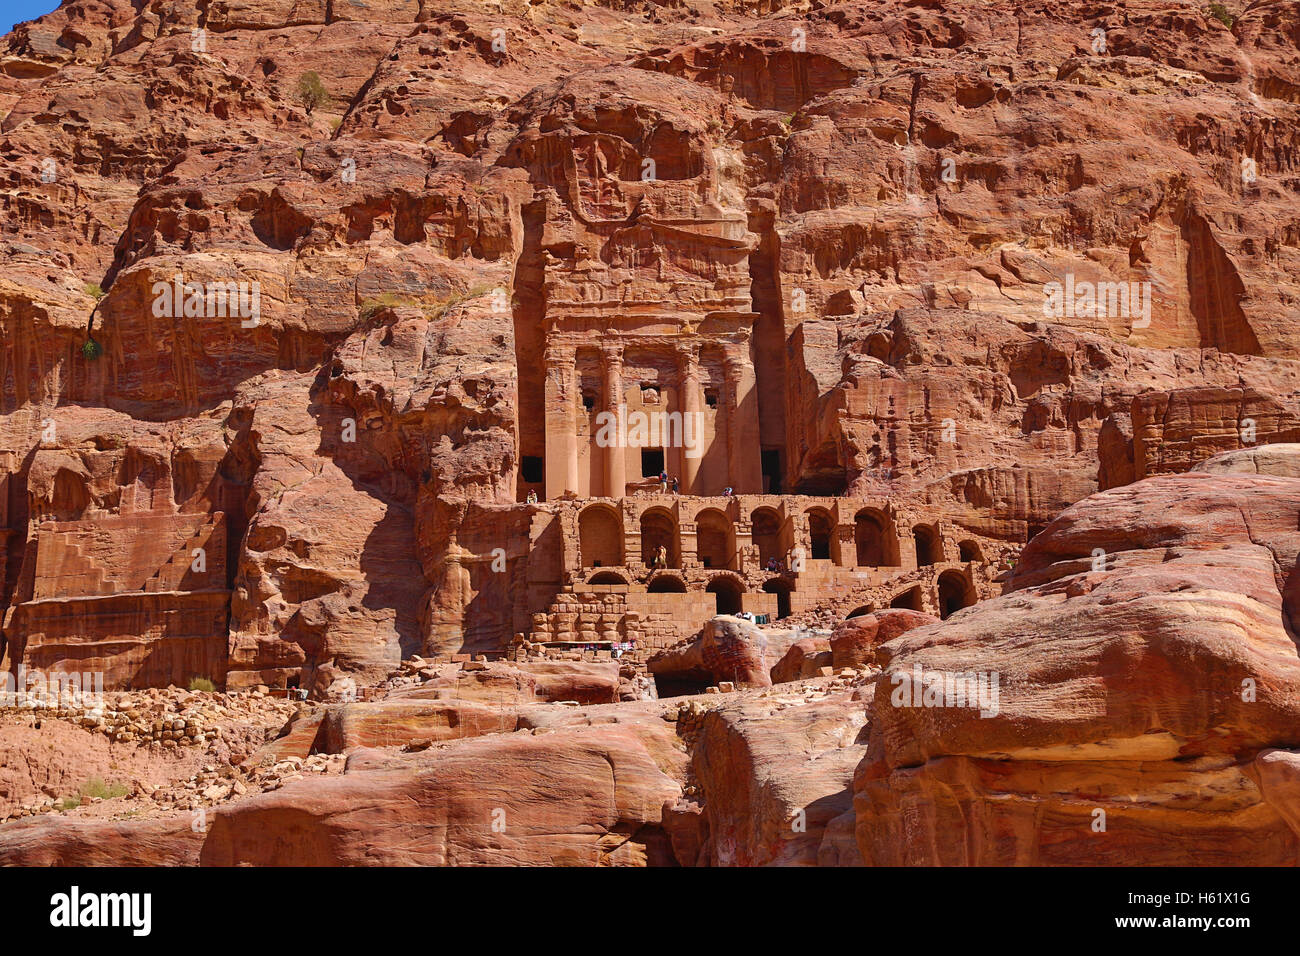 The Urn Tomb of the Royal Tombs in the rock city of Petra, Jordan - Stock Image